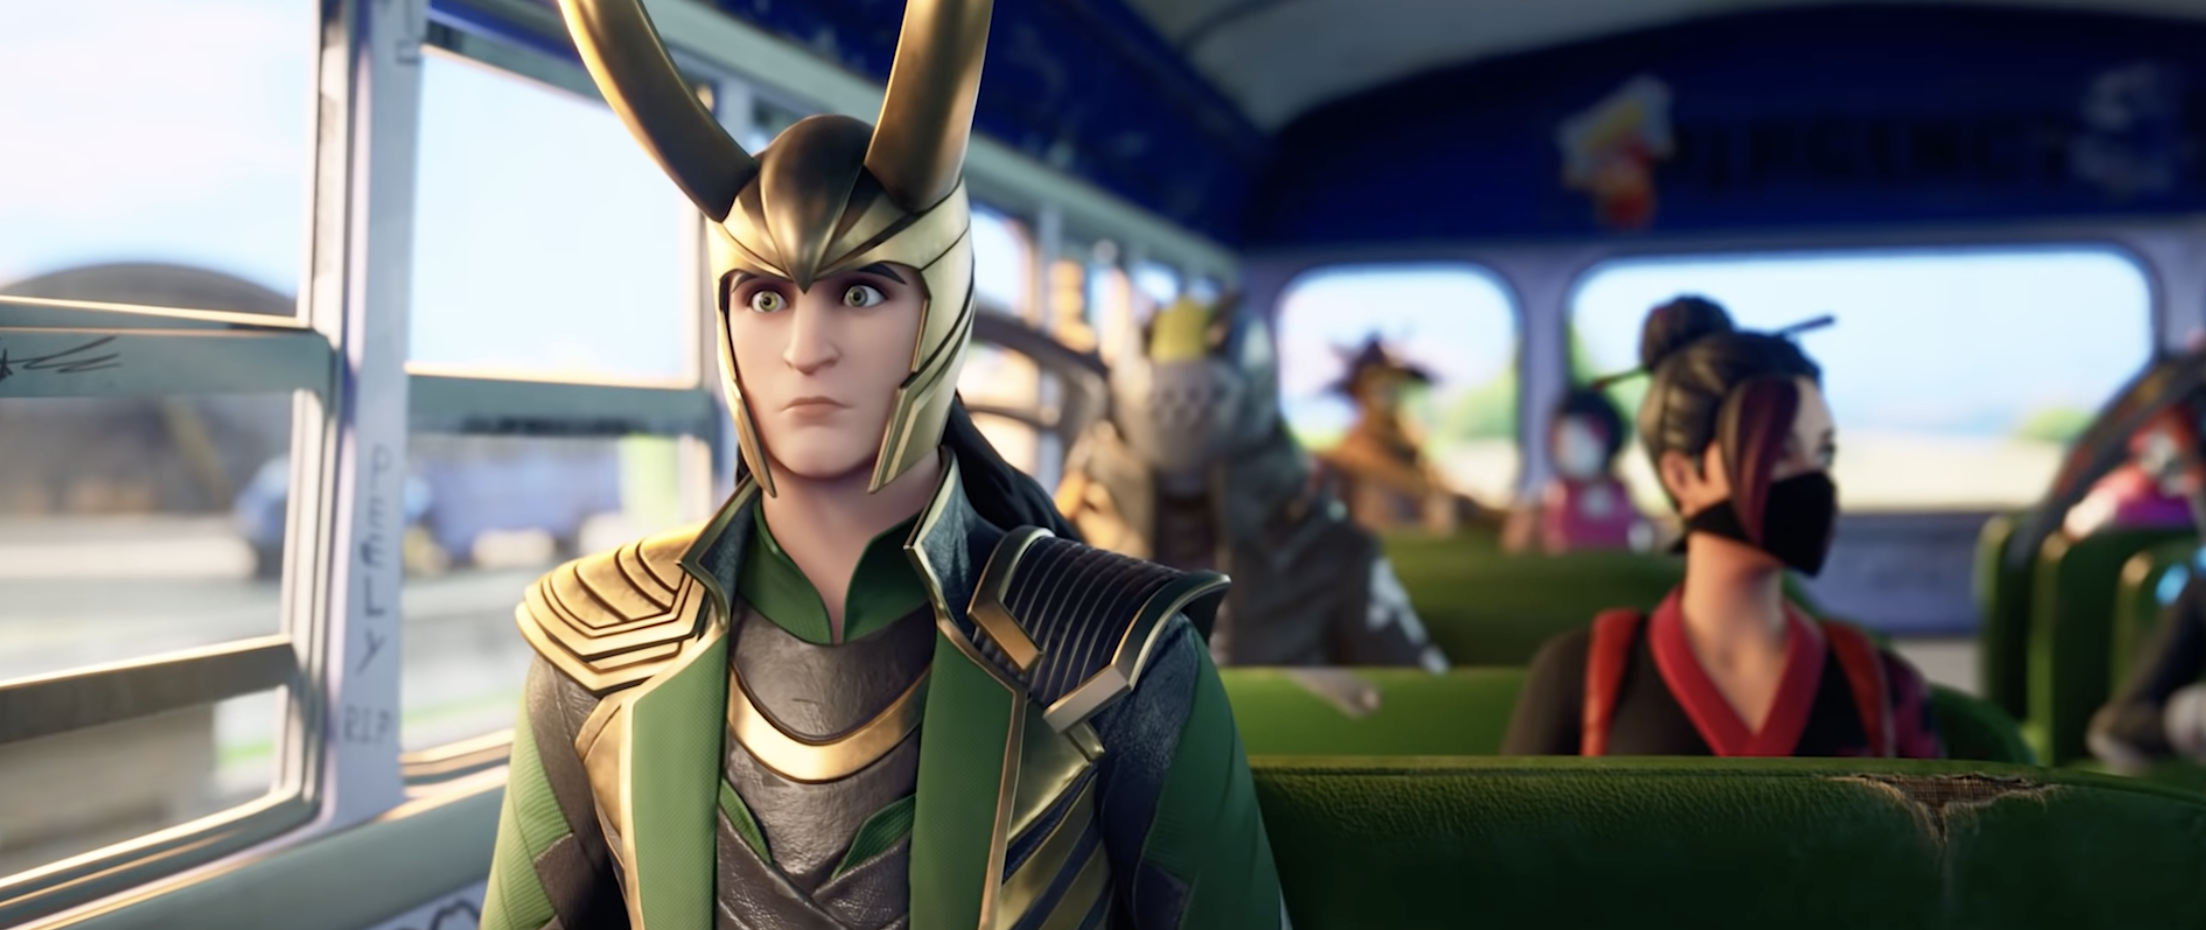 Loki heads to Fortnite as part of July Crew Pack - CNET